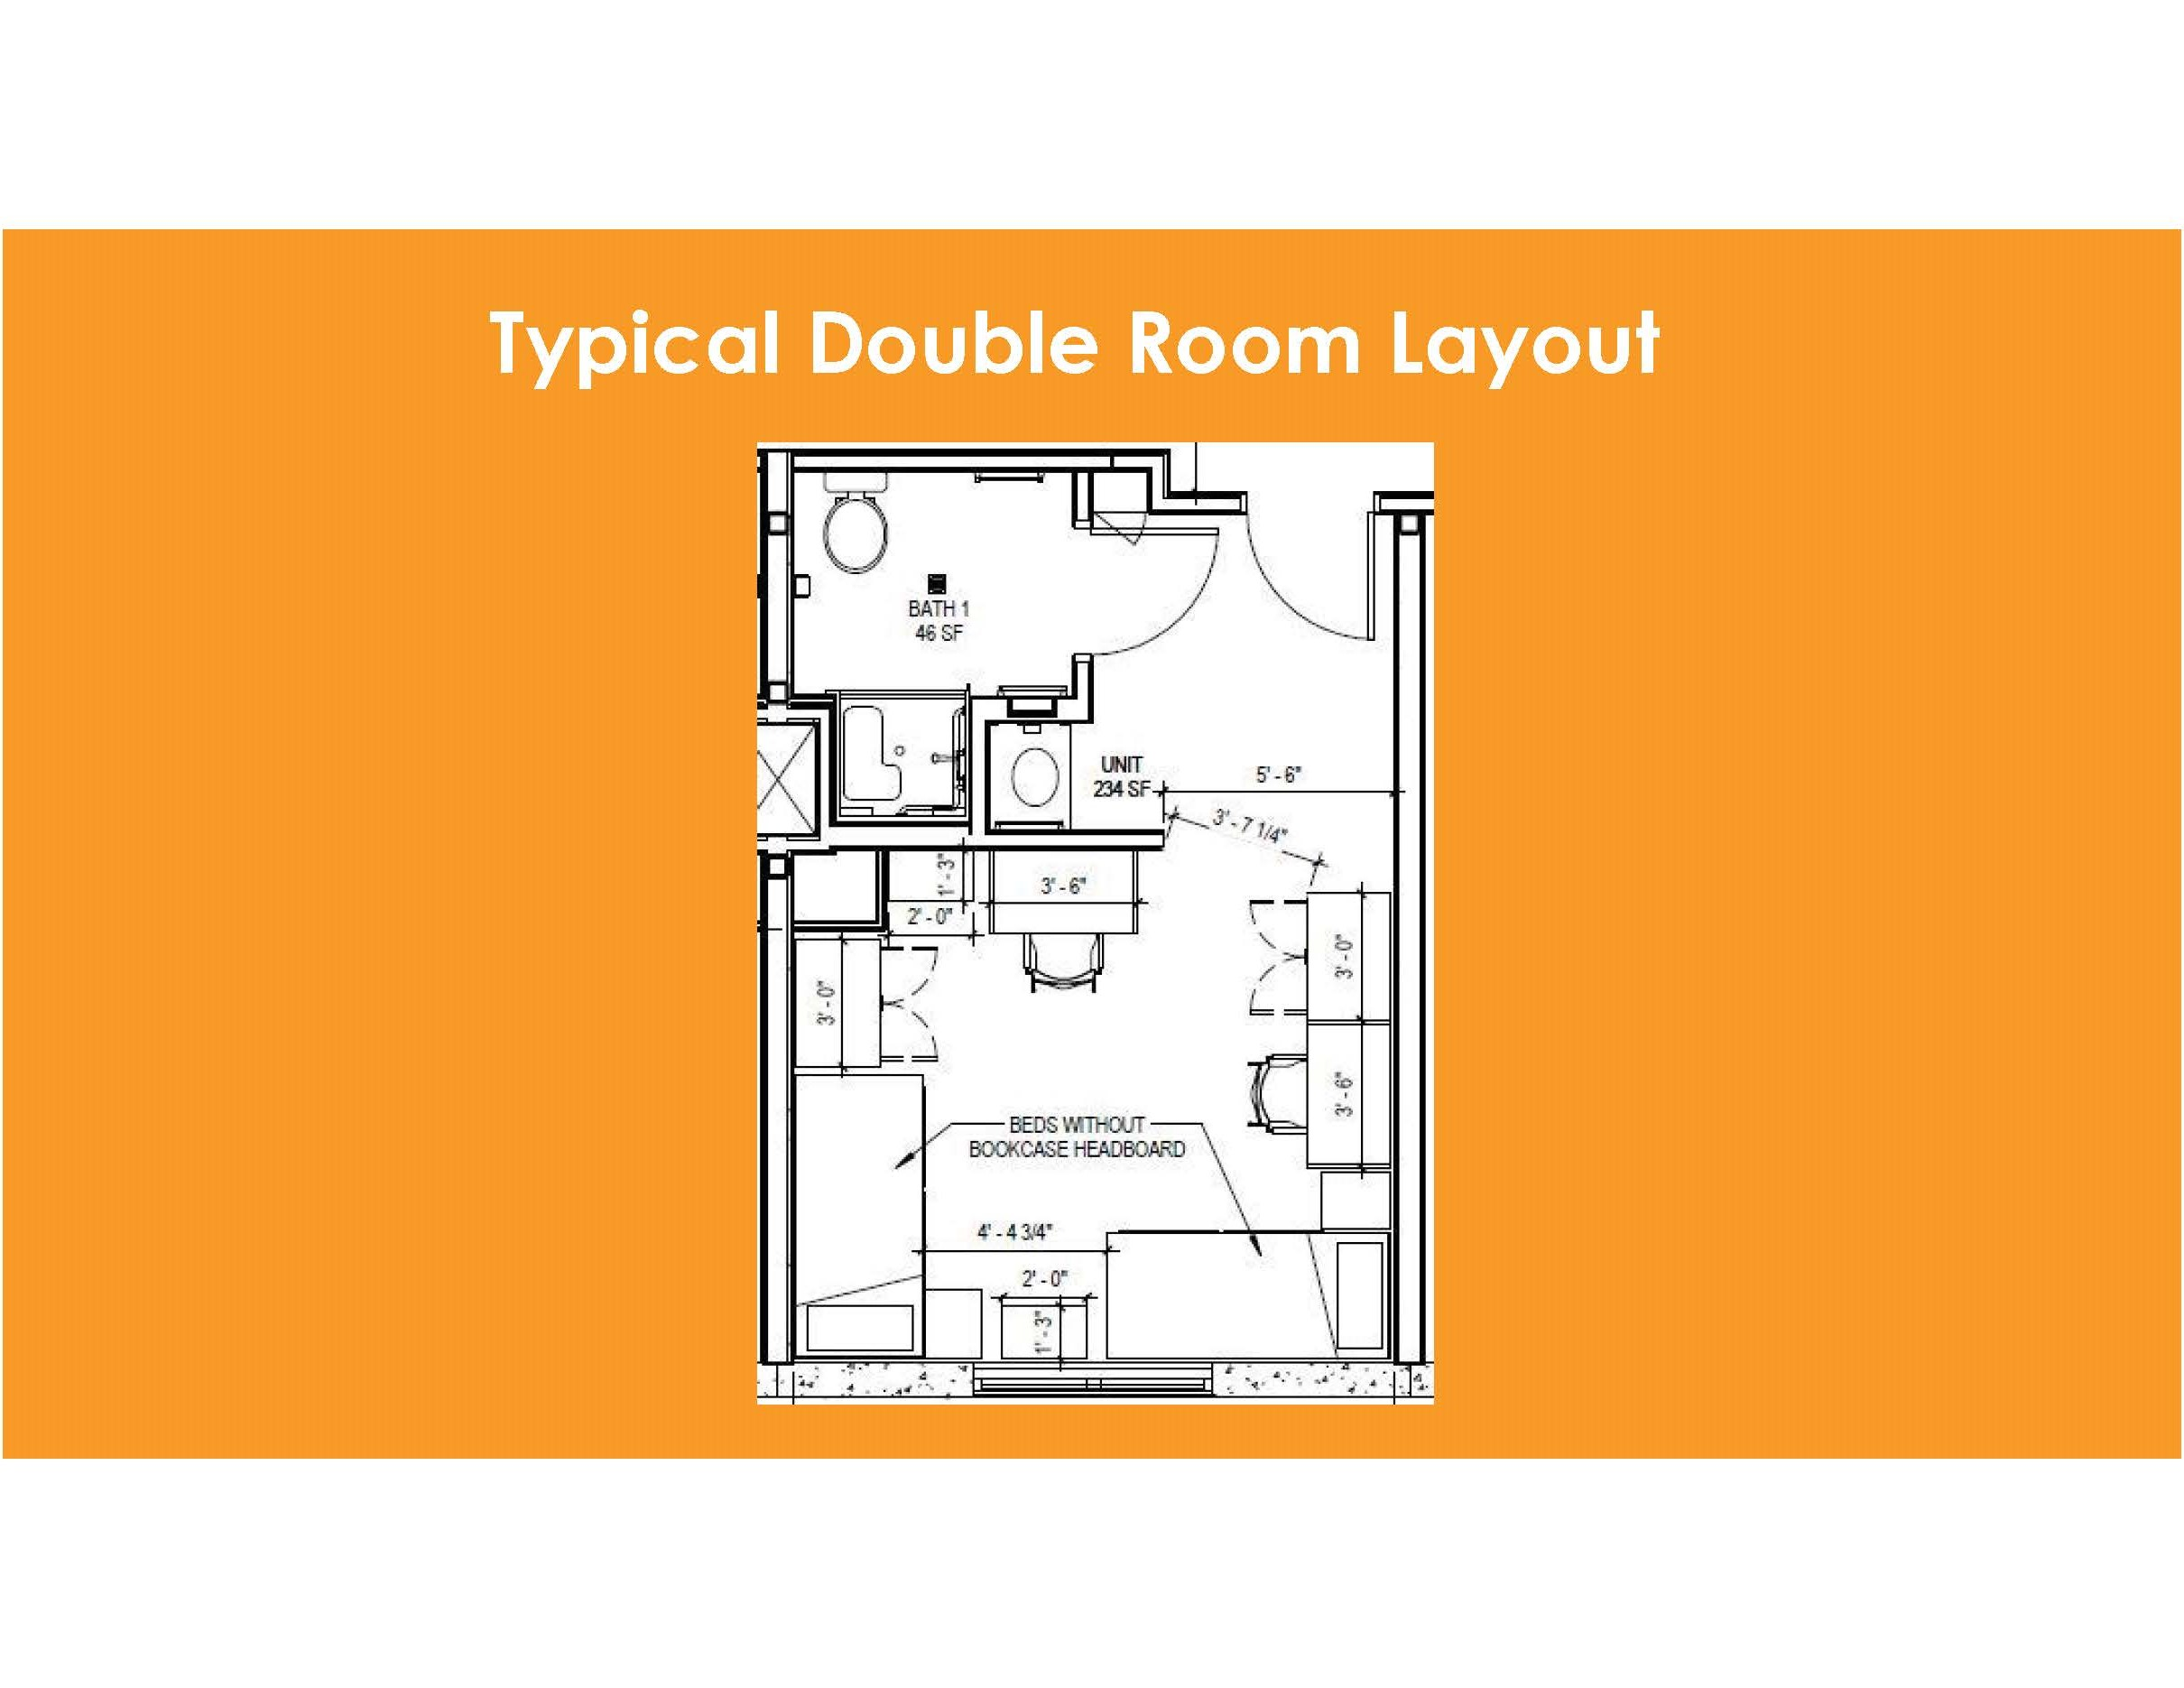 Room Diagram | Room Specifications Housing Residence Life American University